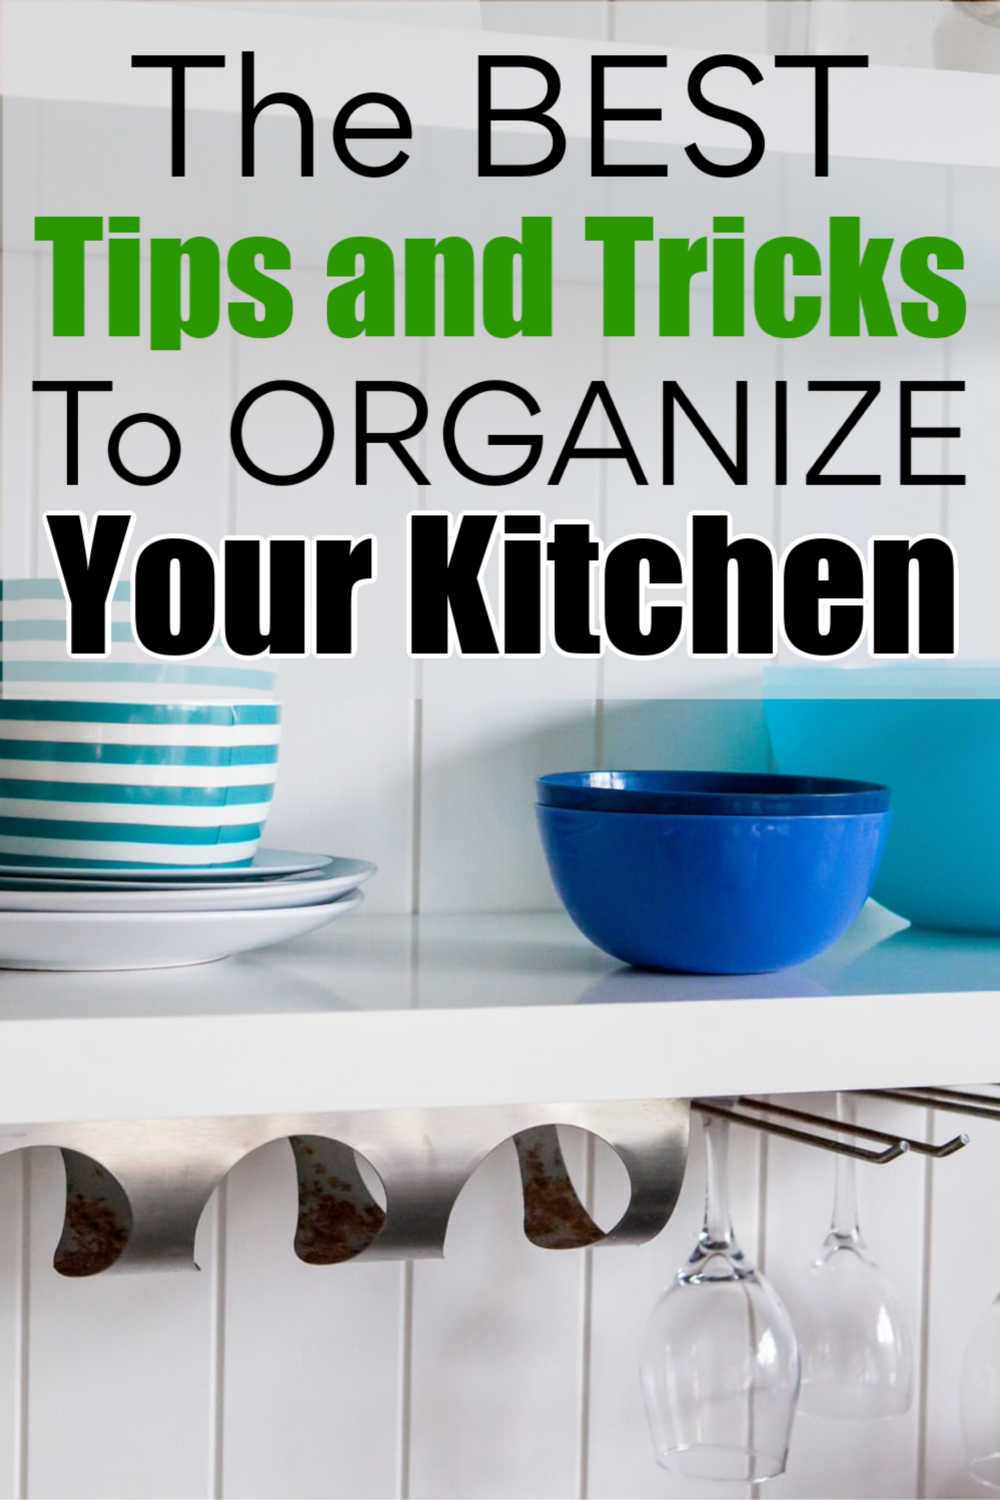 14 Frugal Kitchen Organizing Ideas for Organizing on a Dime